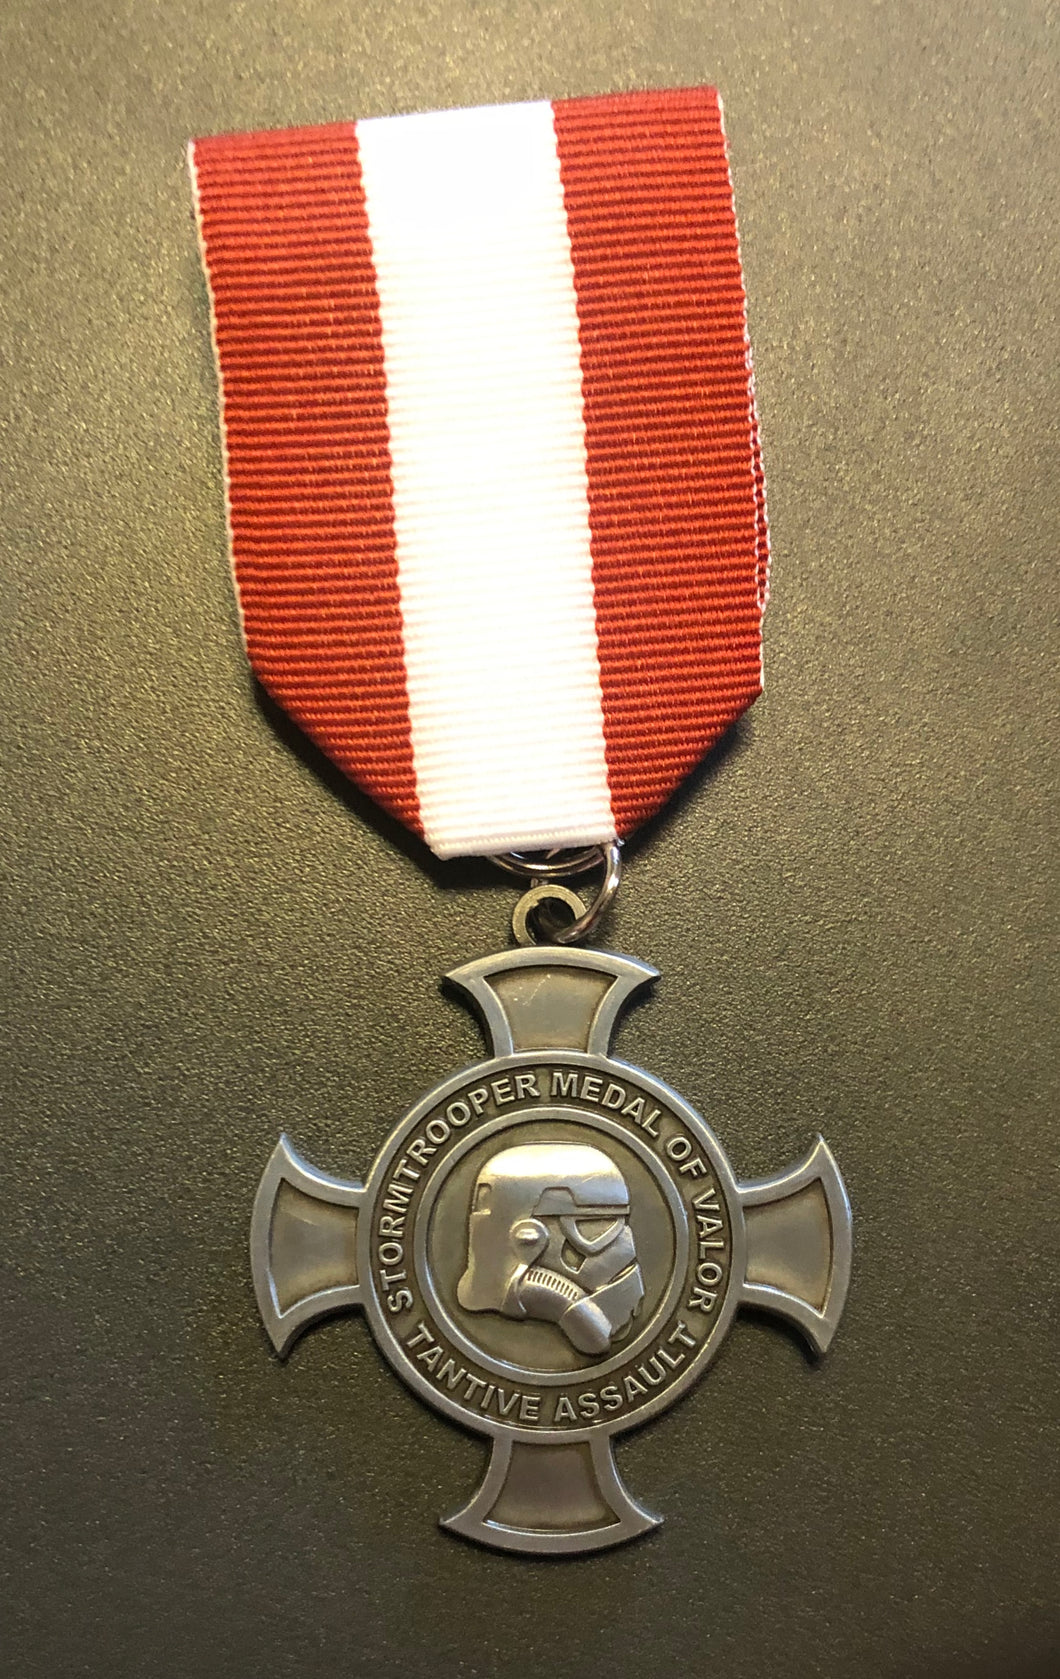 Stormtrooper Medal of Valor: Tantive Assault